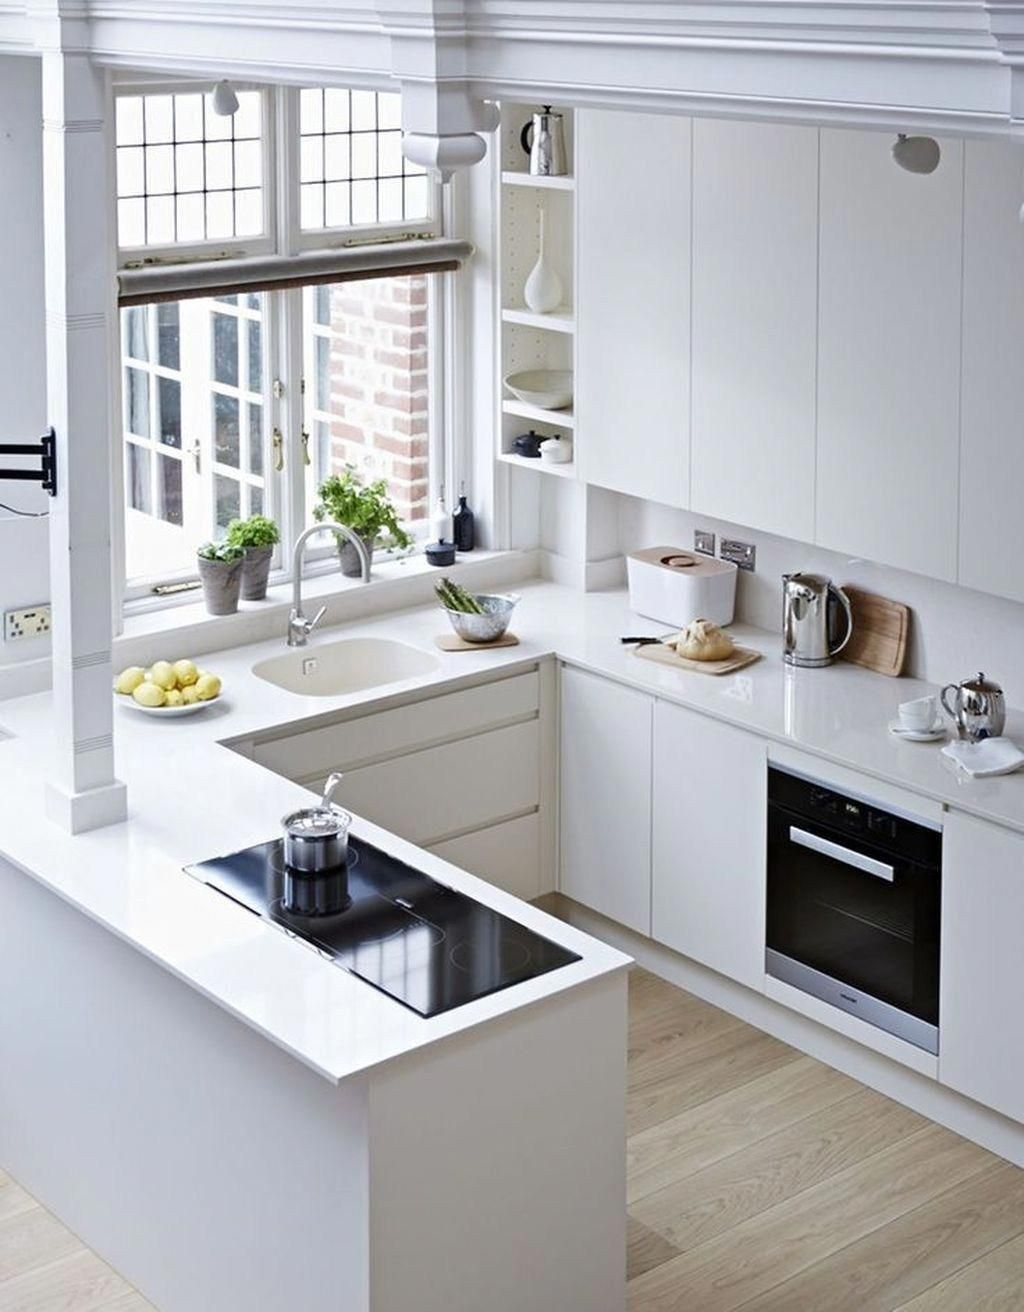 Mini Küche Ecklösung Inspiring Small Modern Kitchen Design Ideas 17